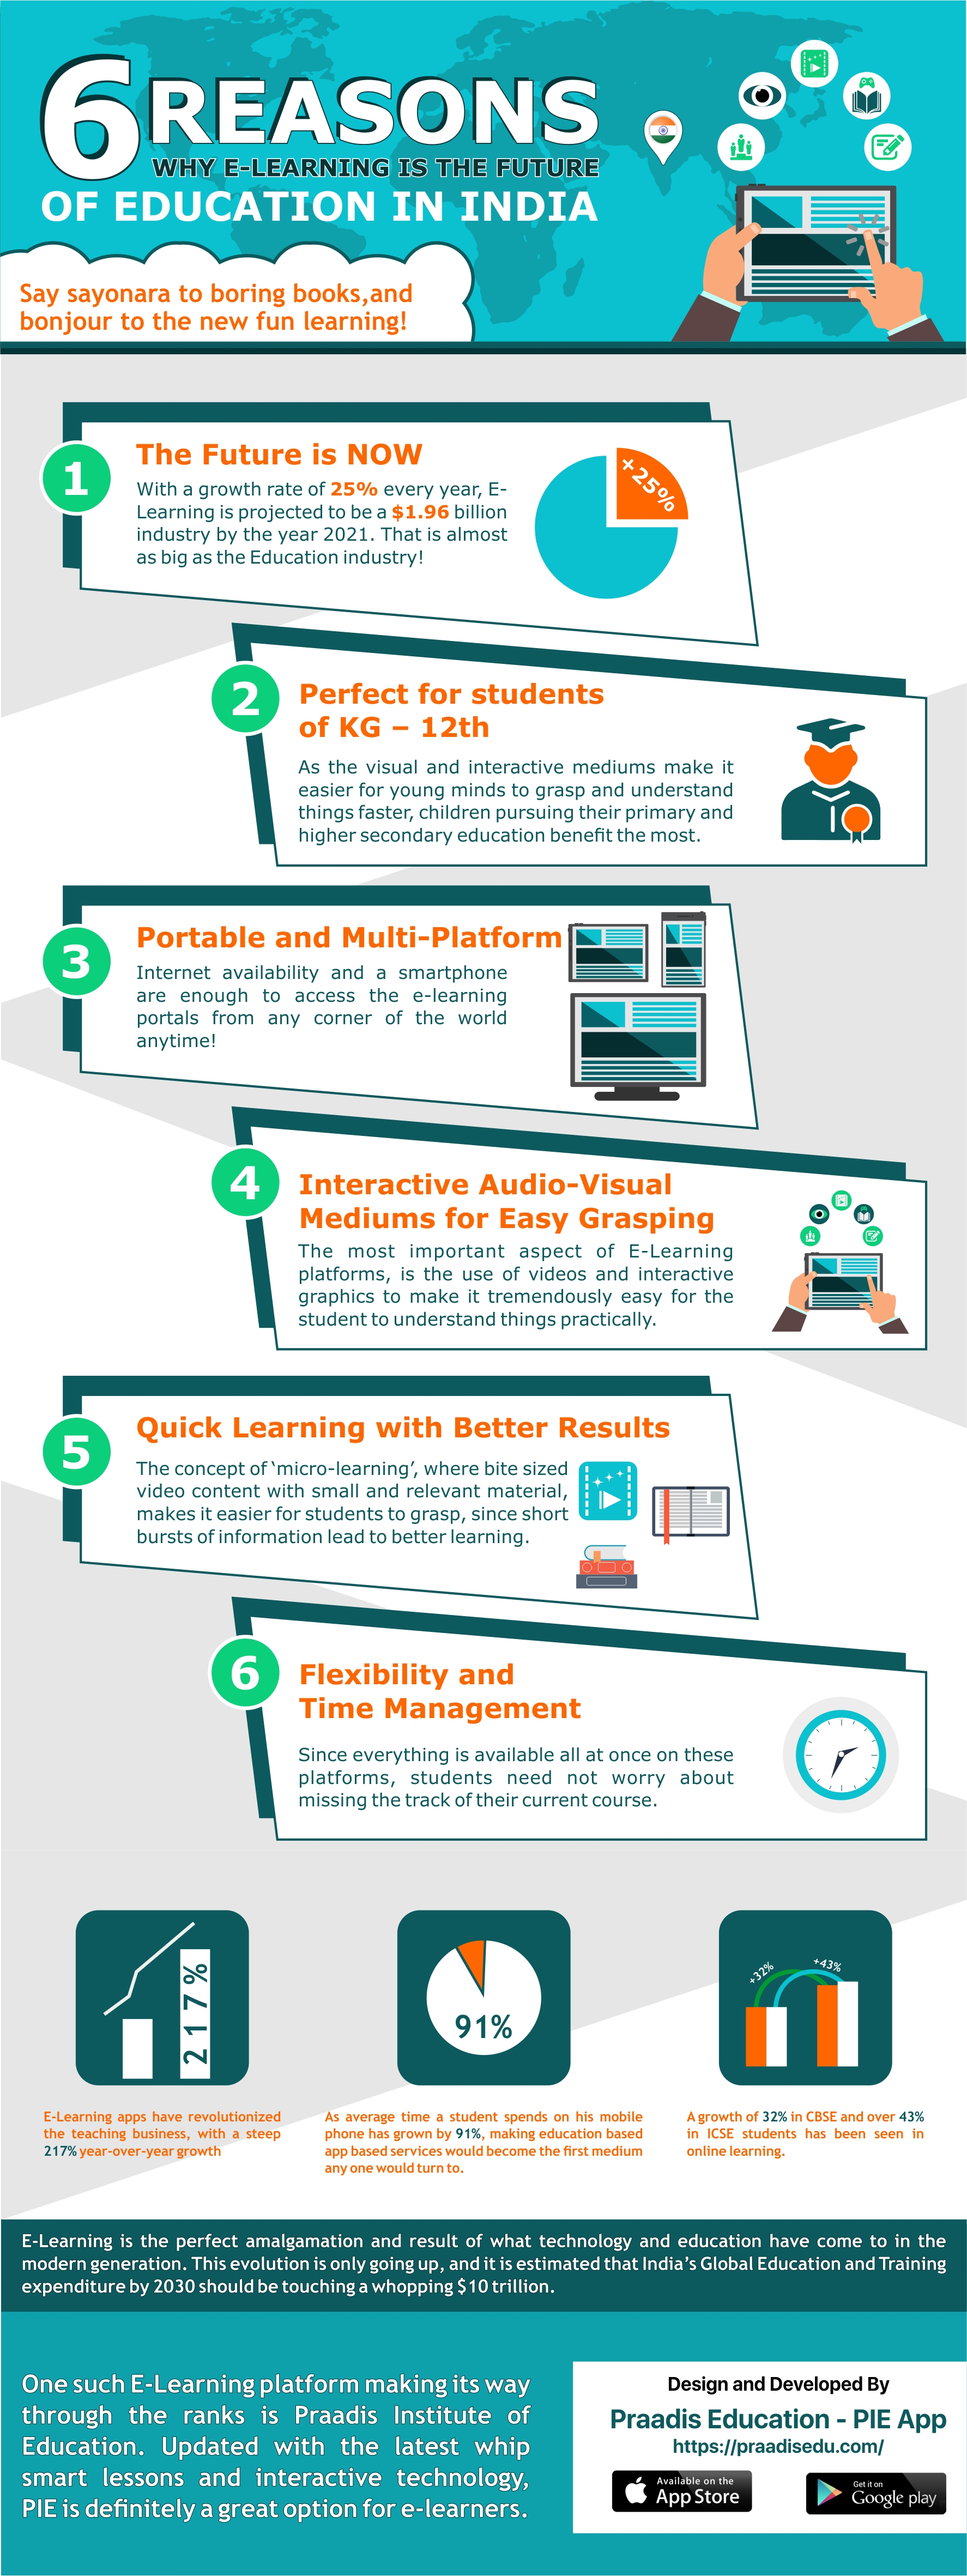 6 Reasons why E-Learning is the Future of Education in India